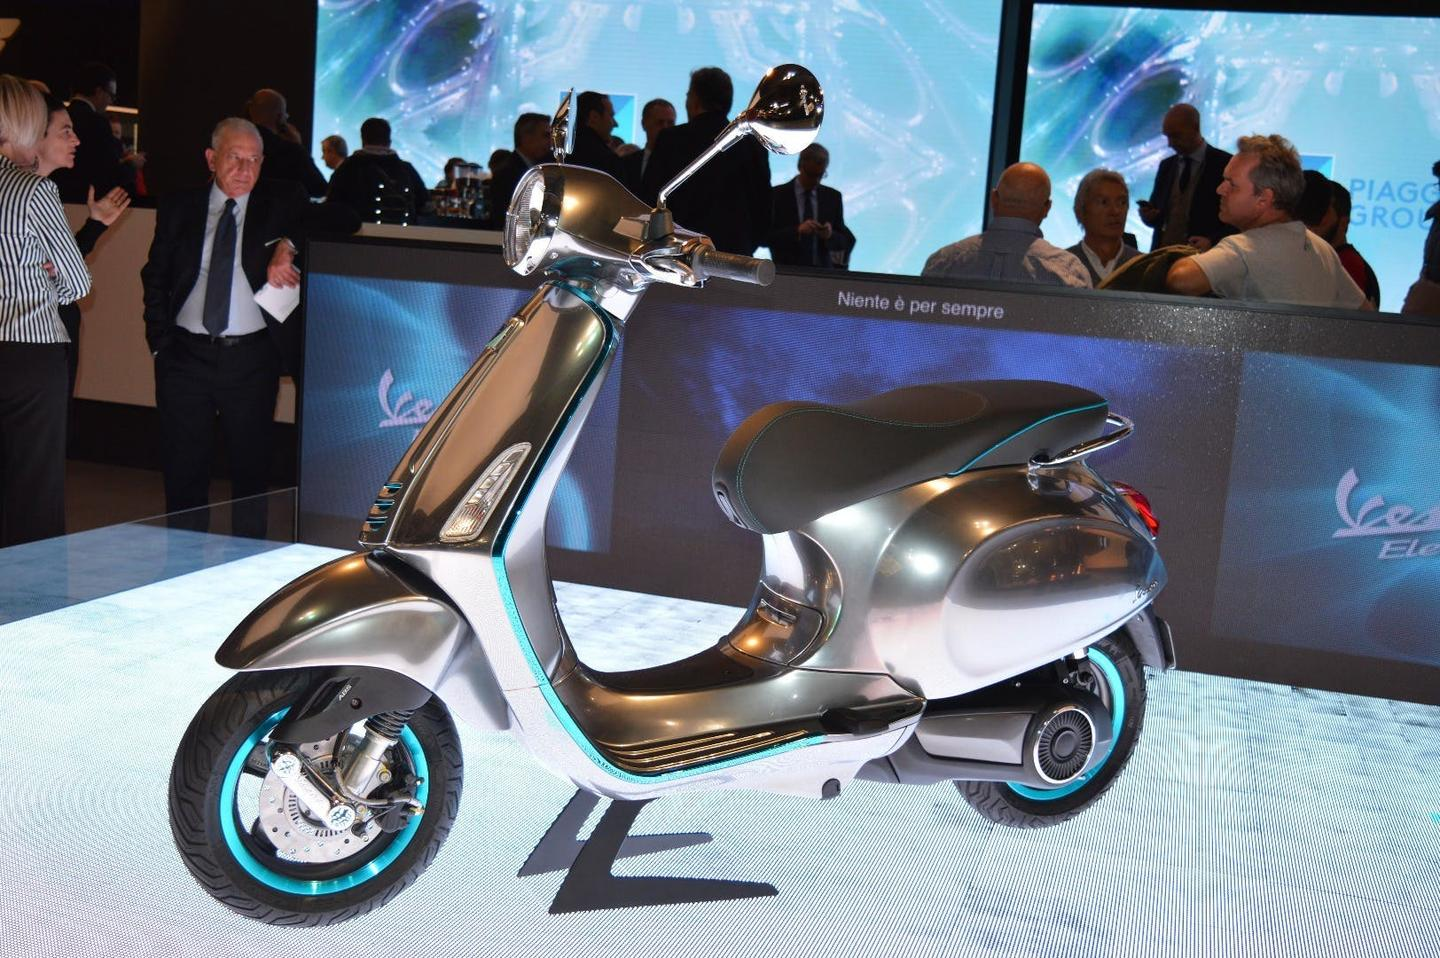 The Vespa Elettrica is available for online order from Europe at a price of €6,390 (approx. US$7,350)